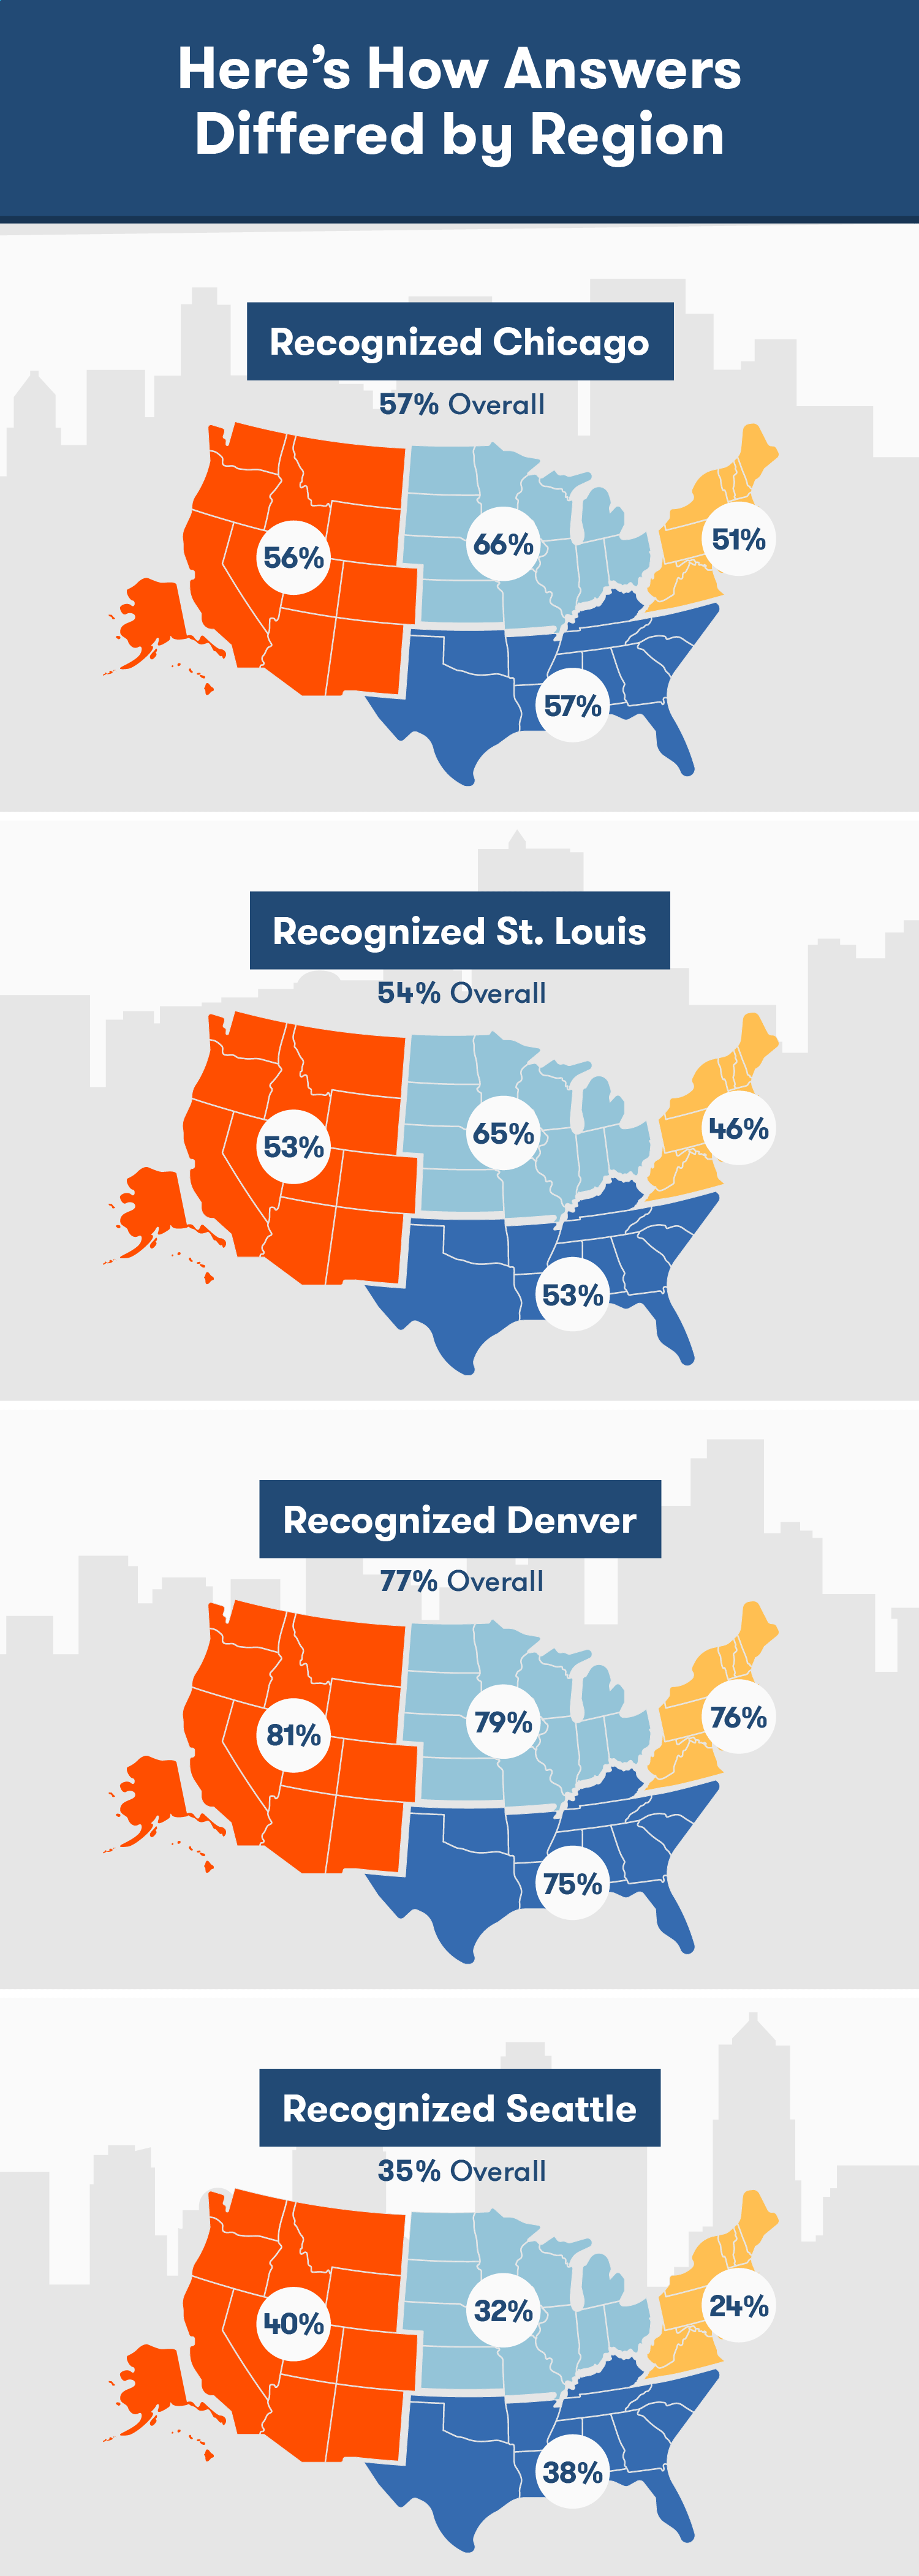 Skyline recognition by region